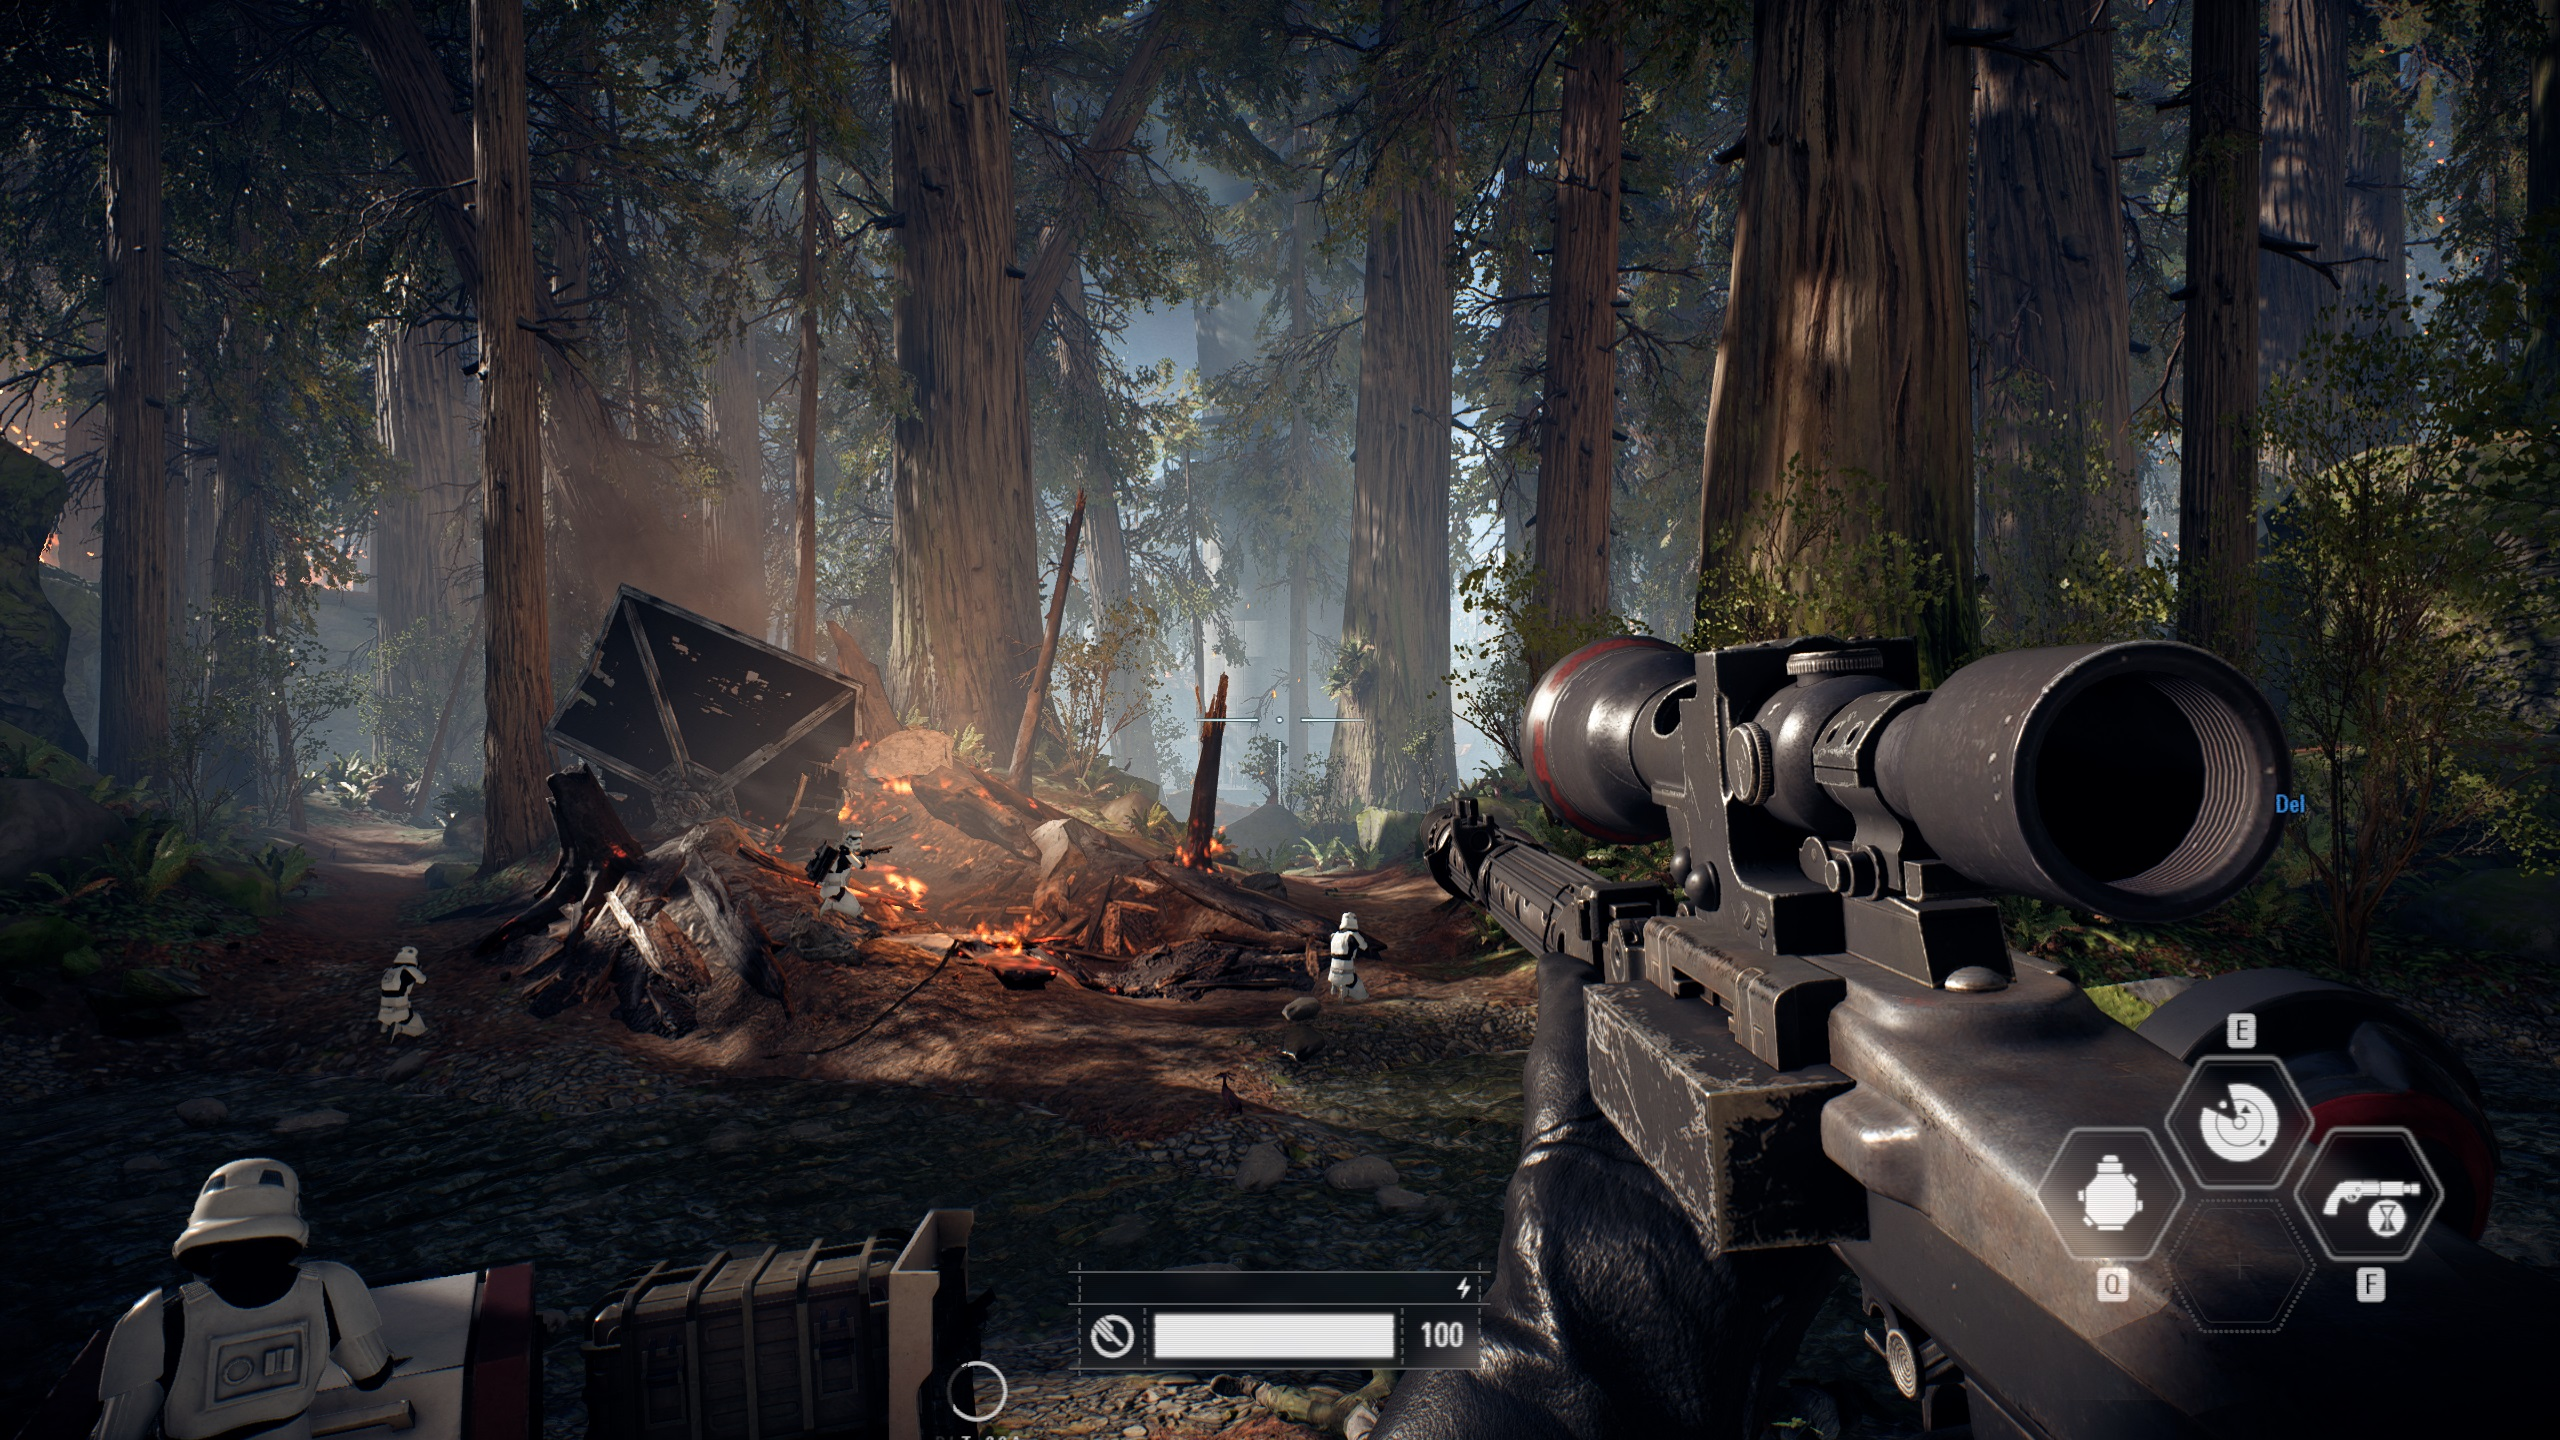 Star Wars Battlefront Ii Trial Pc Performance Review High Resolution Screenshot Graphical Comparison Low To Ultra Settings Software Oc3d Review